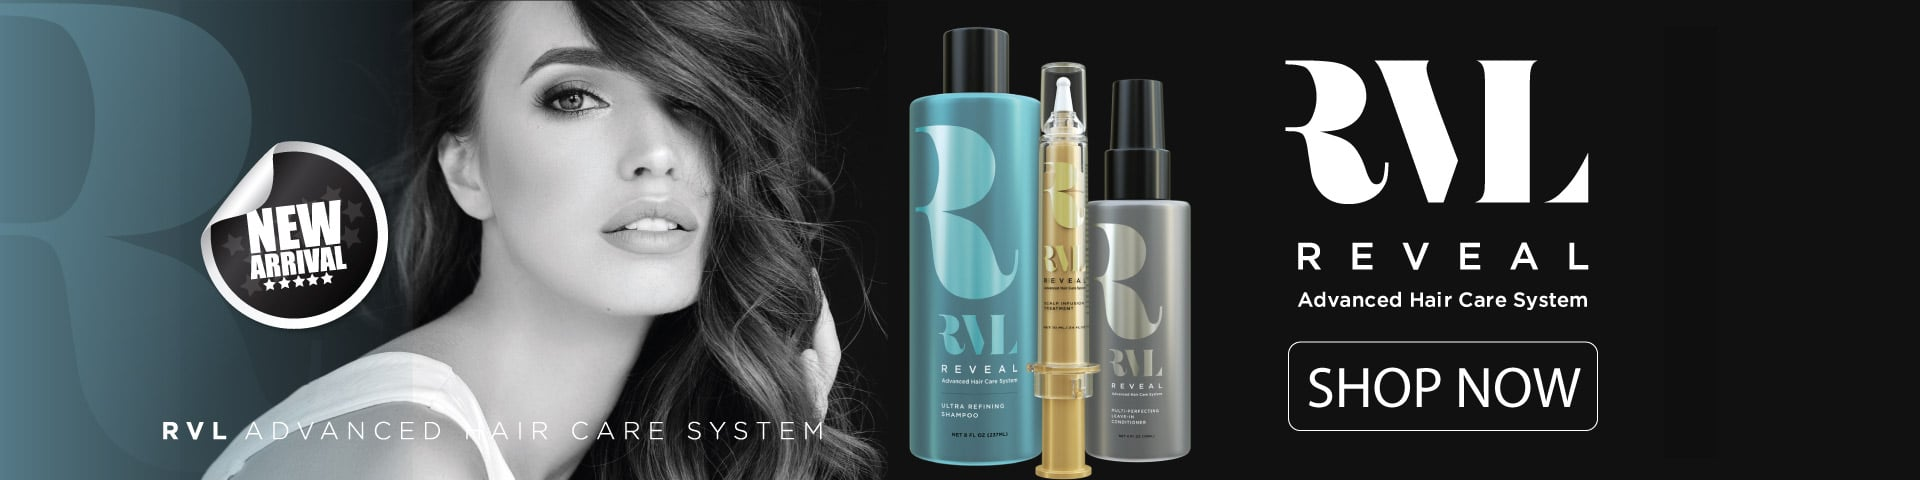 RVL by Jeunesse, Anti Aging Hair Care, Hair Growth formula, stem cell hair growth